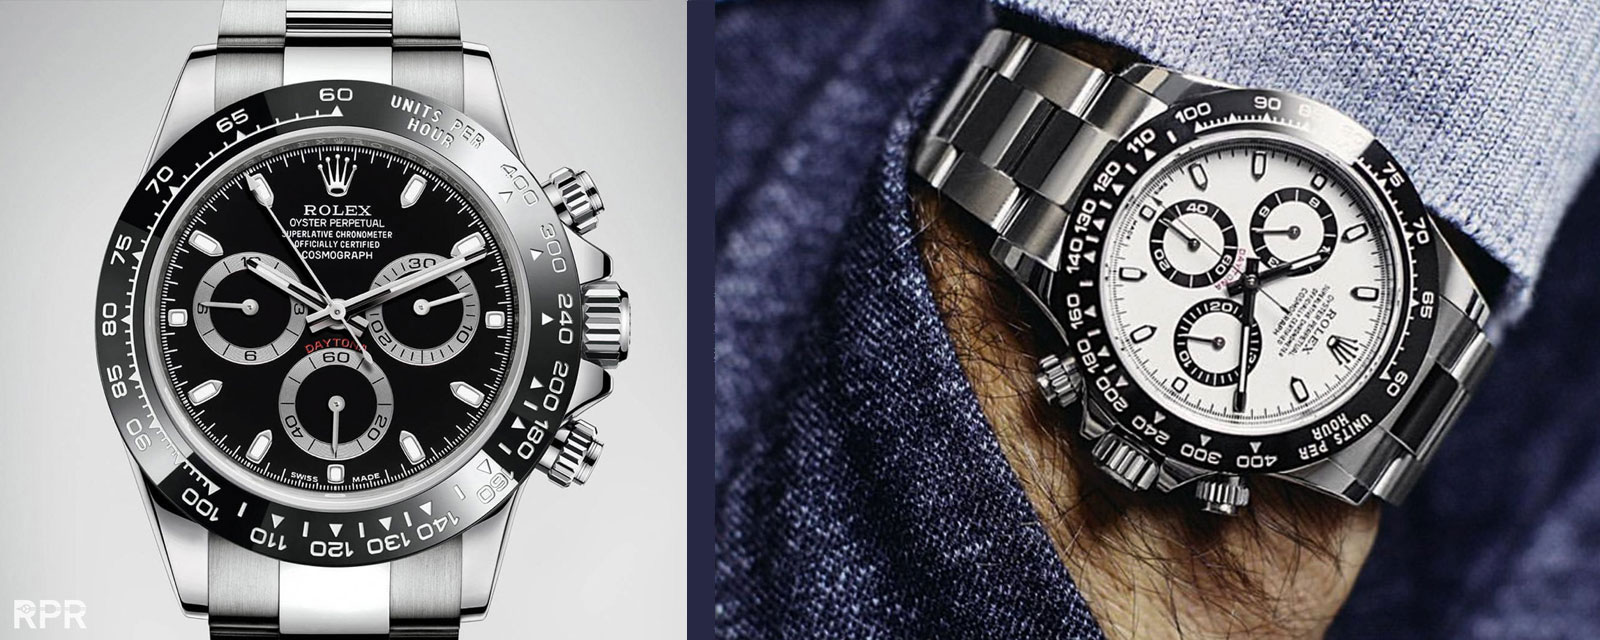 Slider_Rolex_2016_steel_daytona